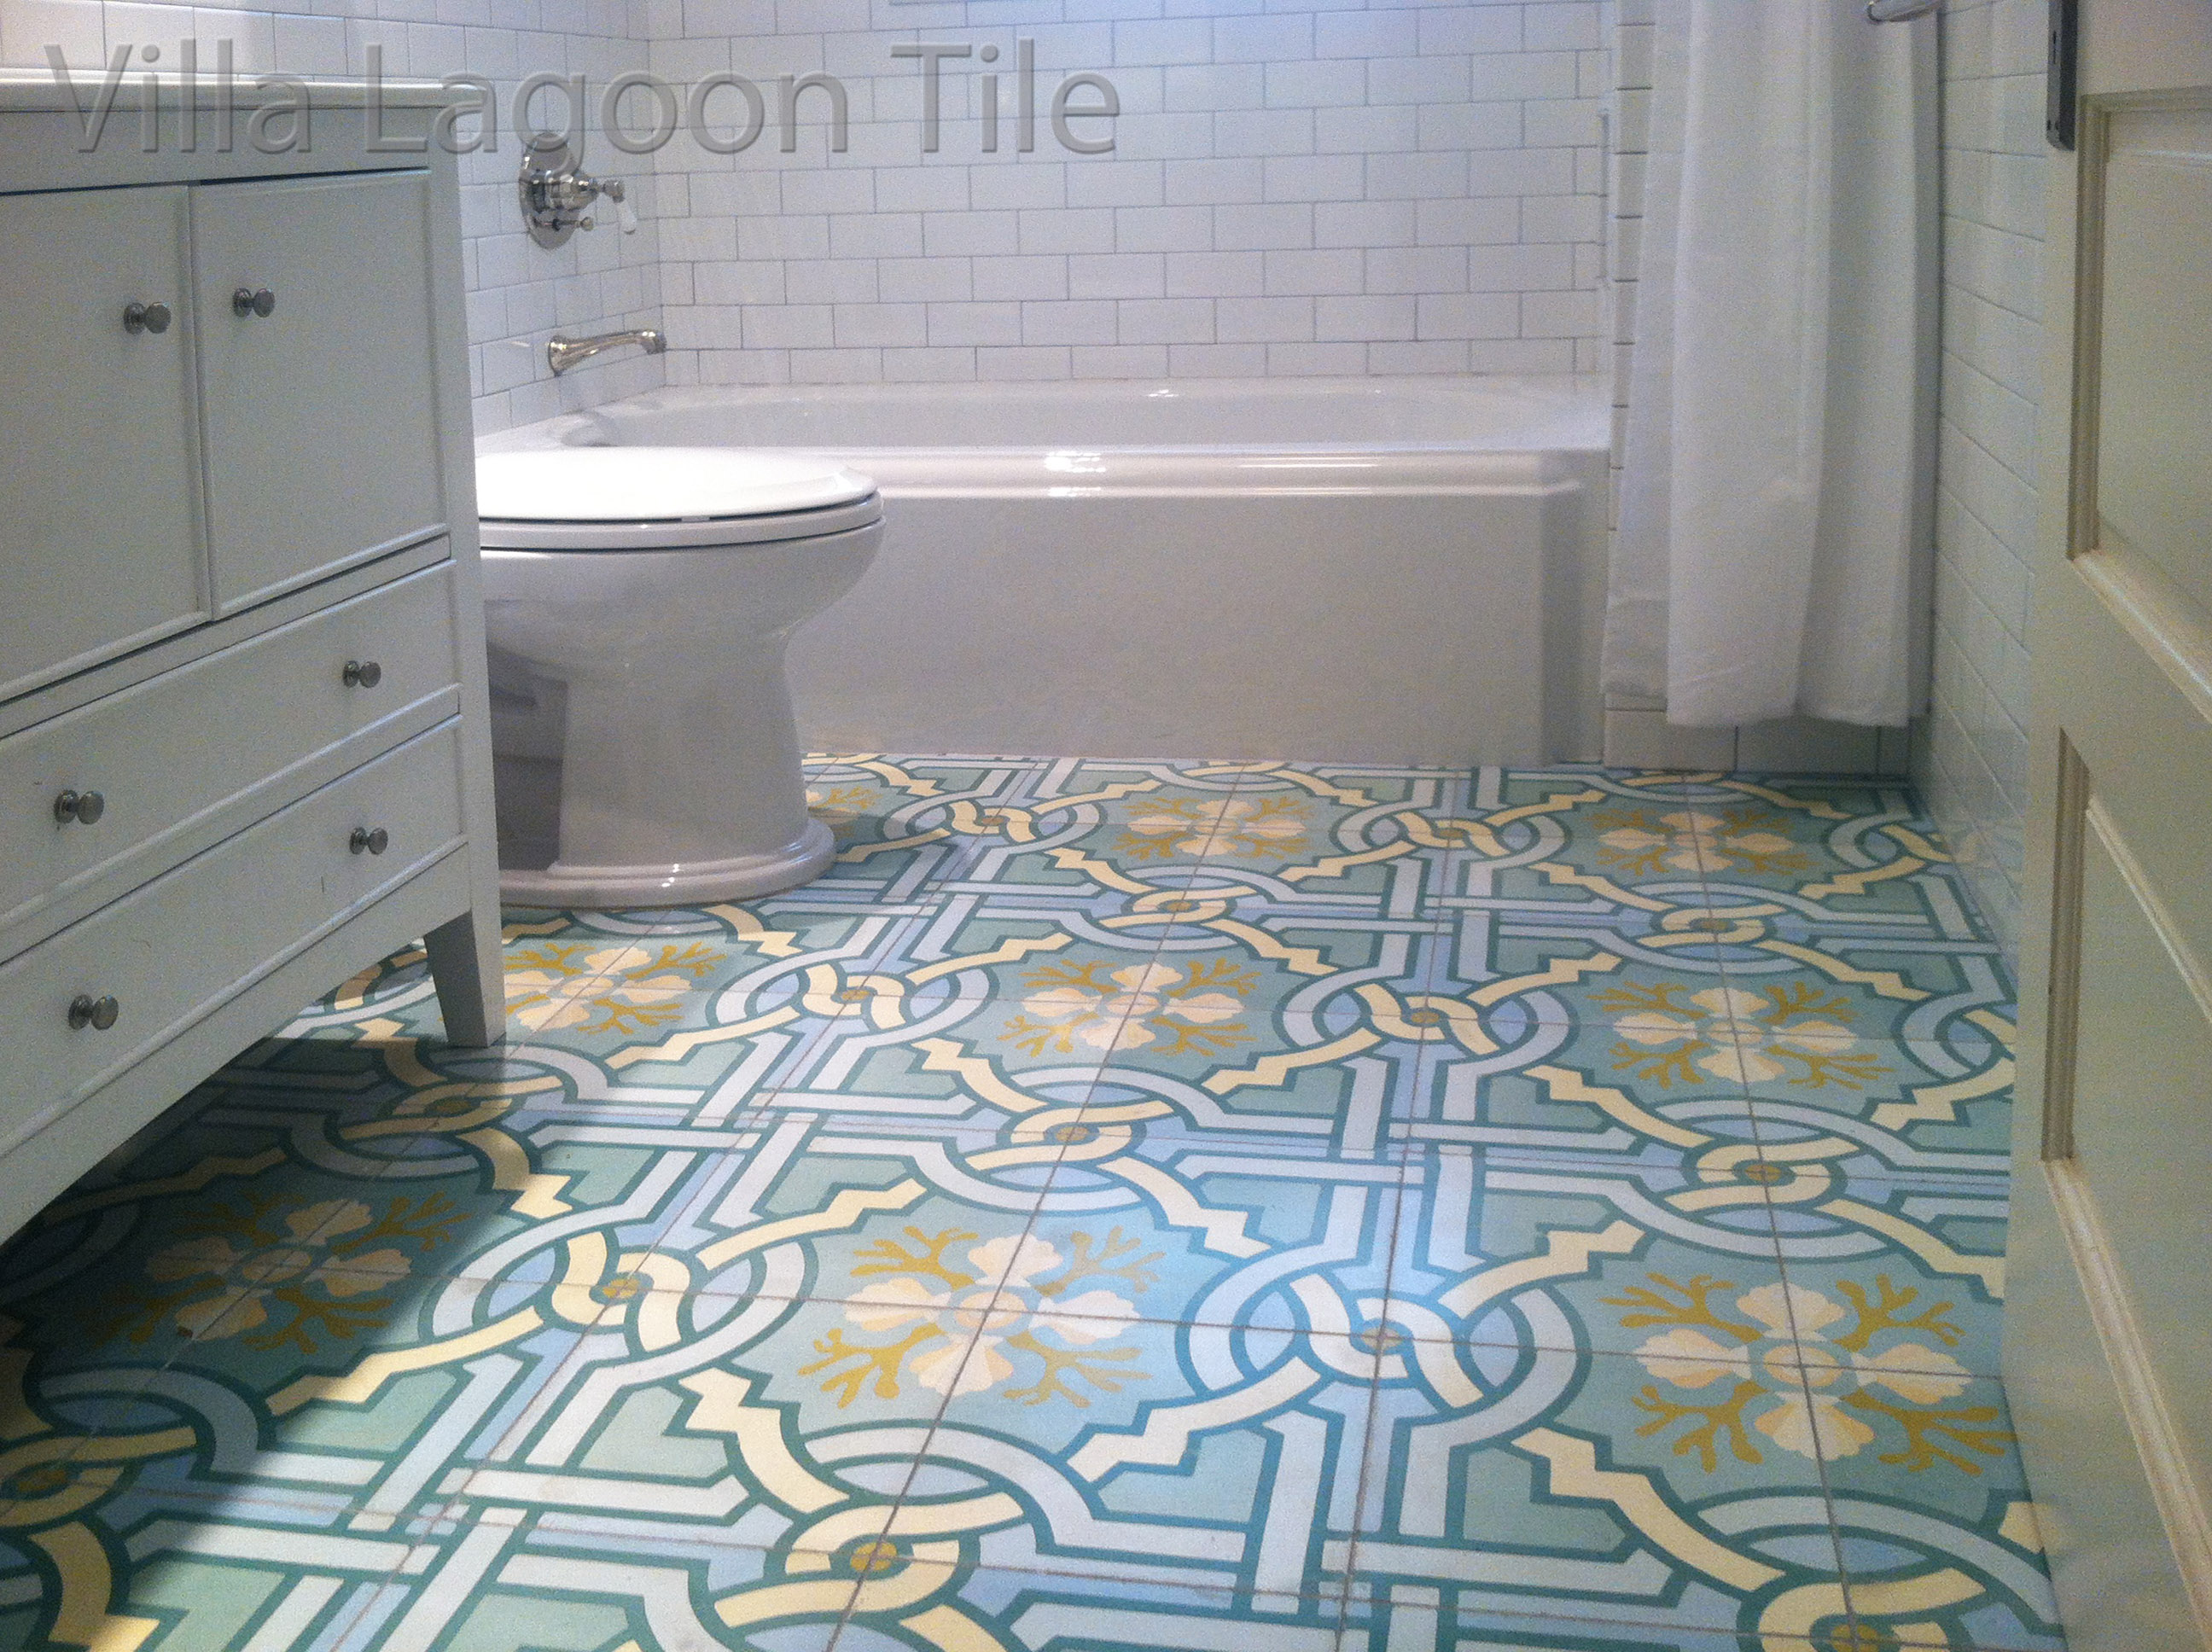 Cement bathroom tiles - Villa Lagoon Tile S Original Venetian Azul Cement Tile Brings A White Bathroom